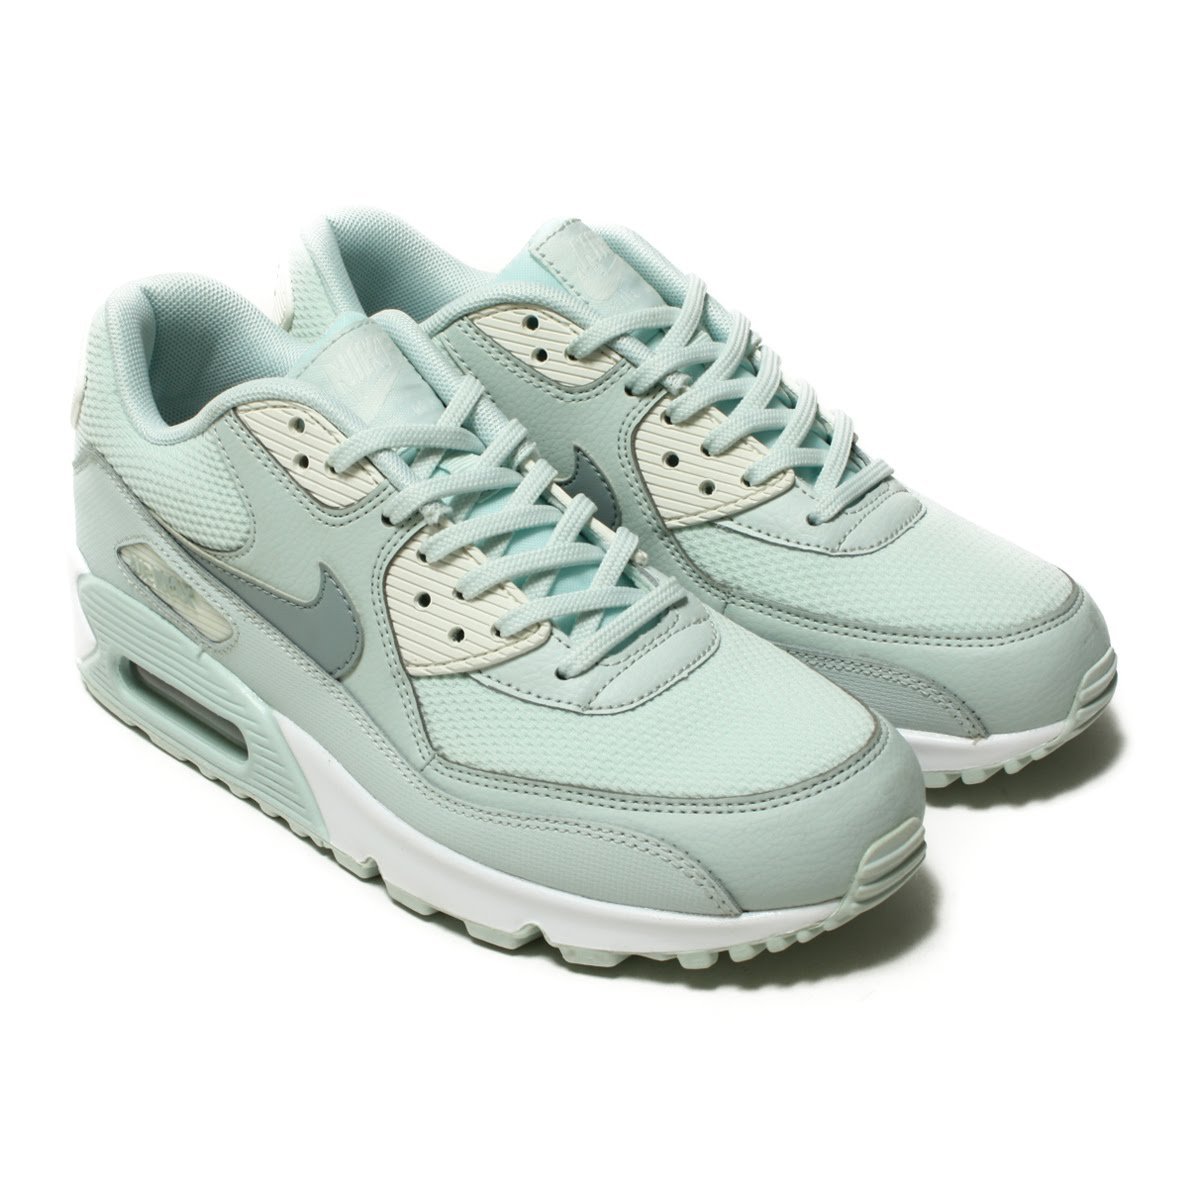 official photos 59ef4 8f257 Nike women Air Max 90 reproduces a tradition of the running of the 90s  faithfully while renovating a design to be usable in the casual scene.